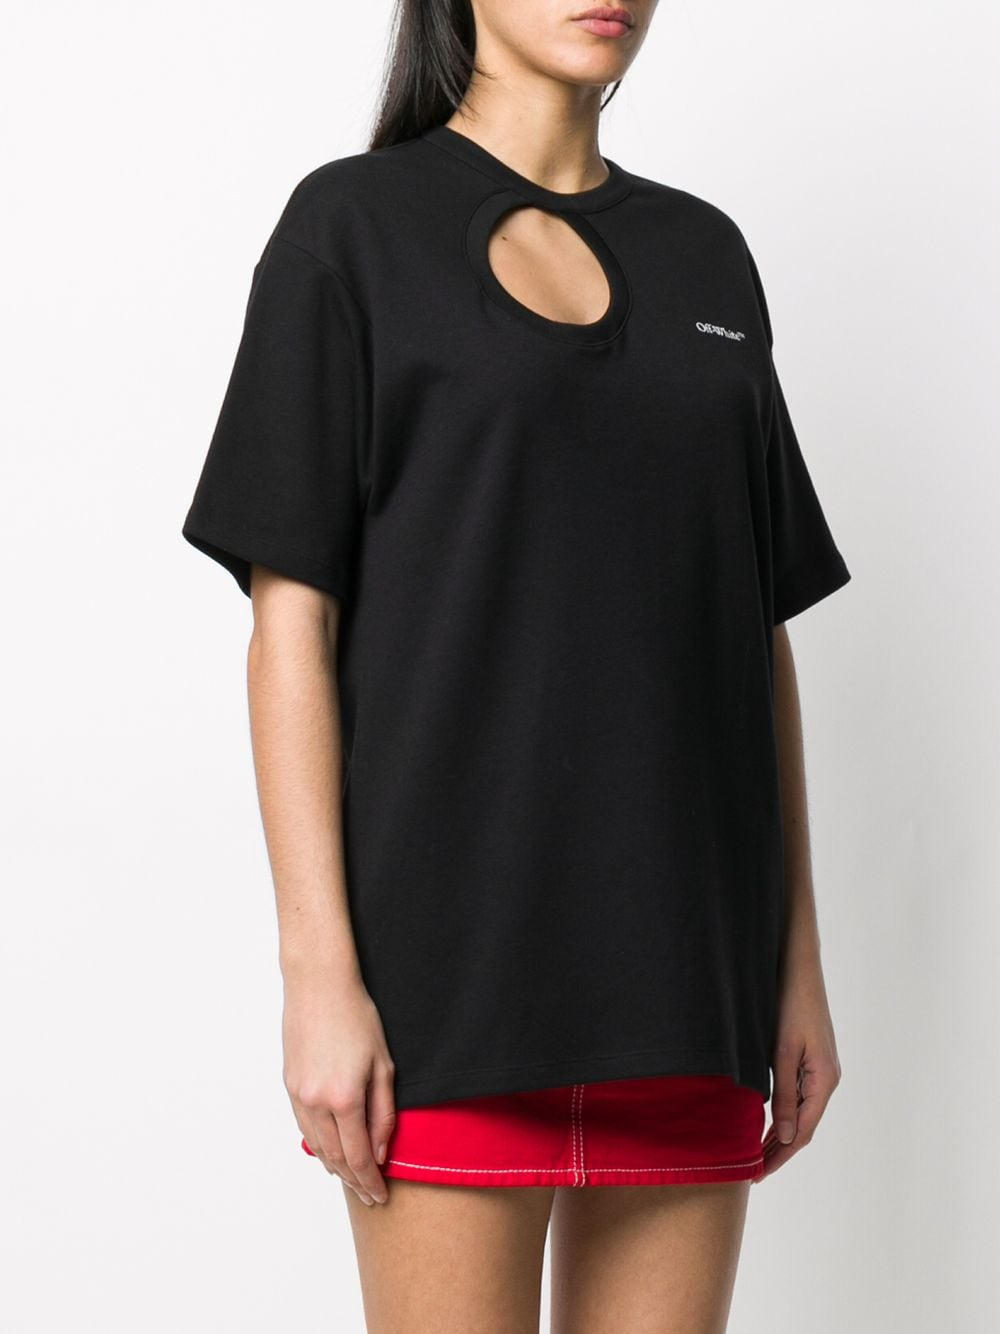 OFF WHITE WOMEN METEOR TOMBOY T-SHIRT